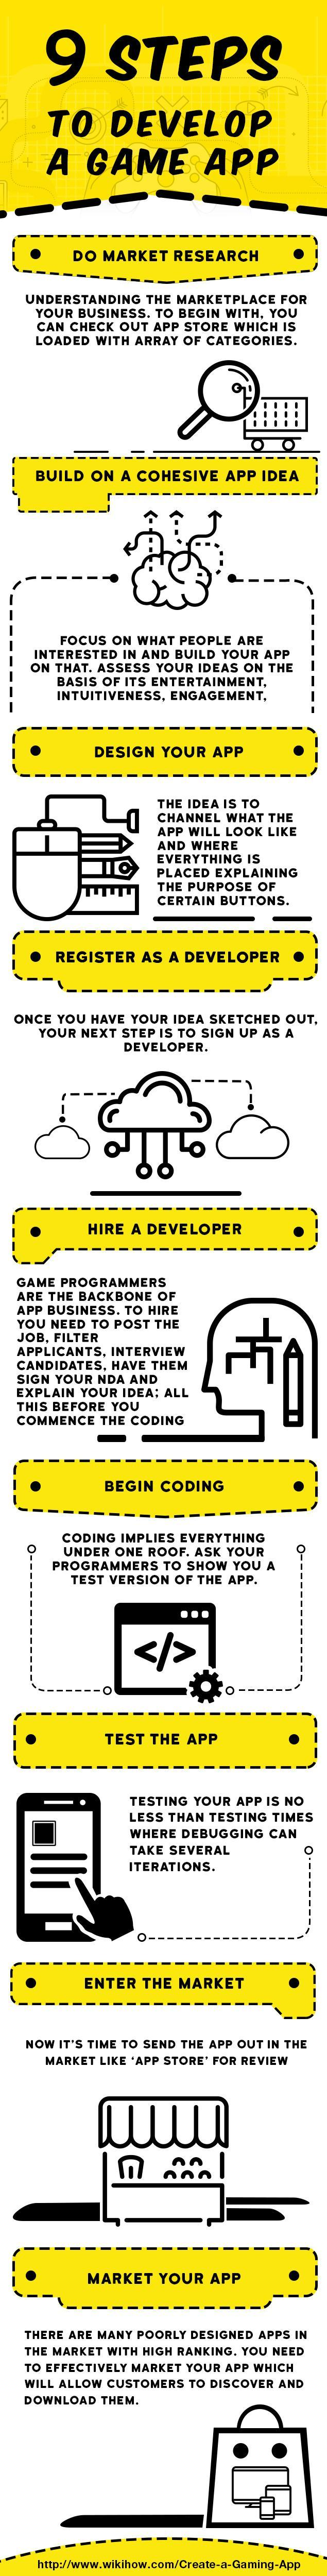 9 Steps to develop game app [infographic]